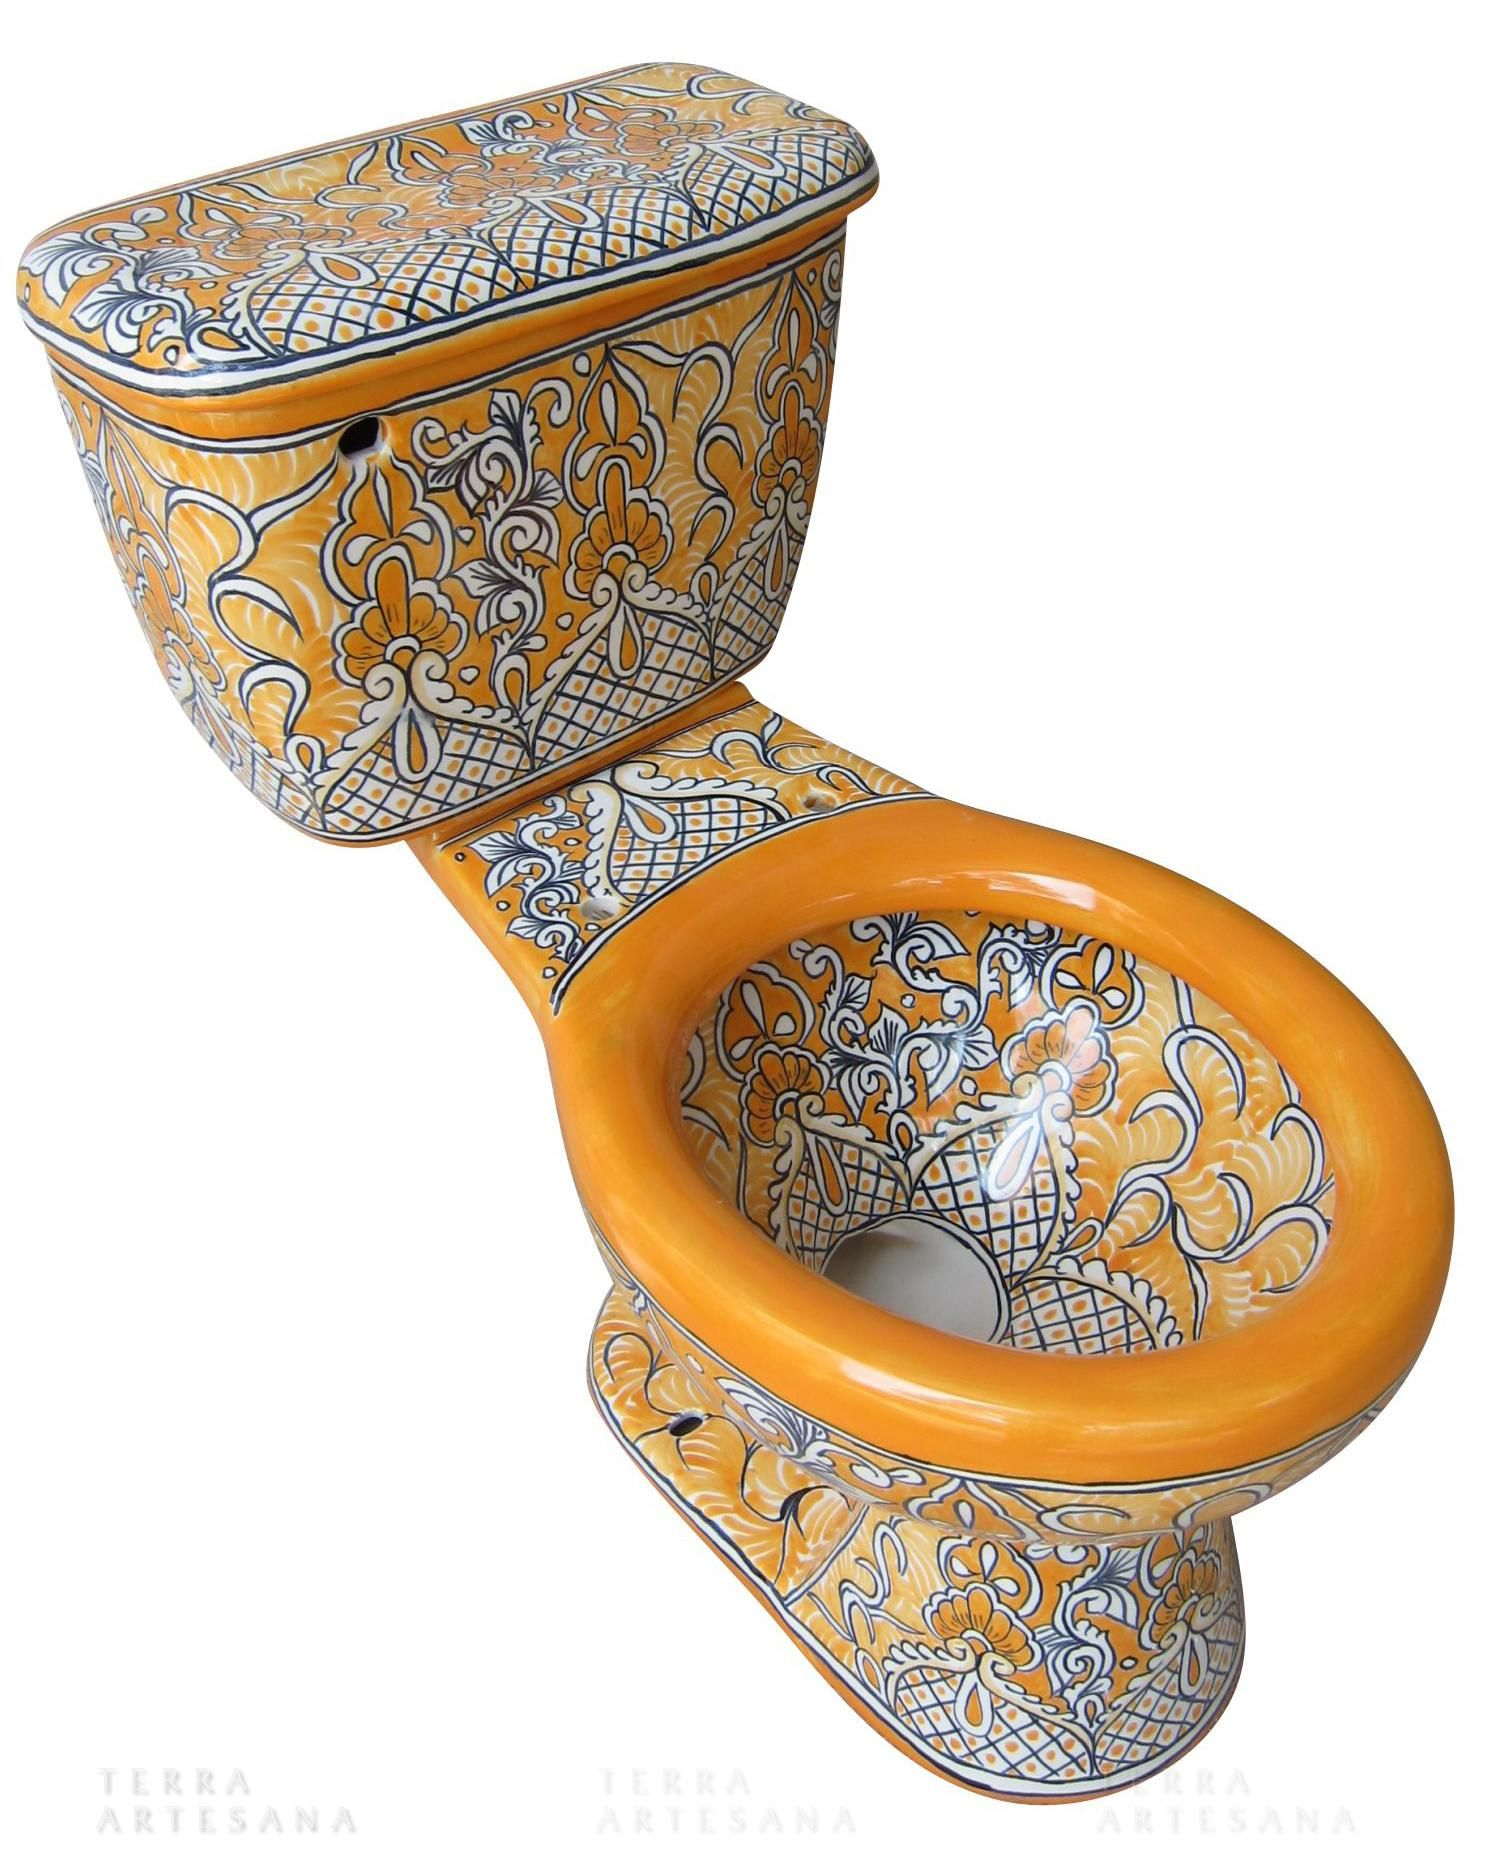 With a pedestal sink that goes with  Talavera, Talavera pottery